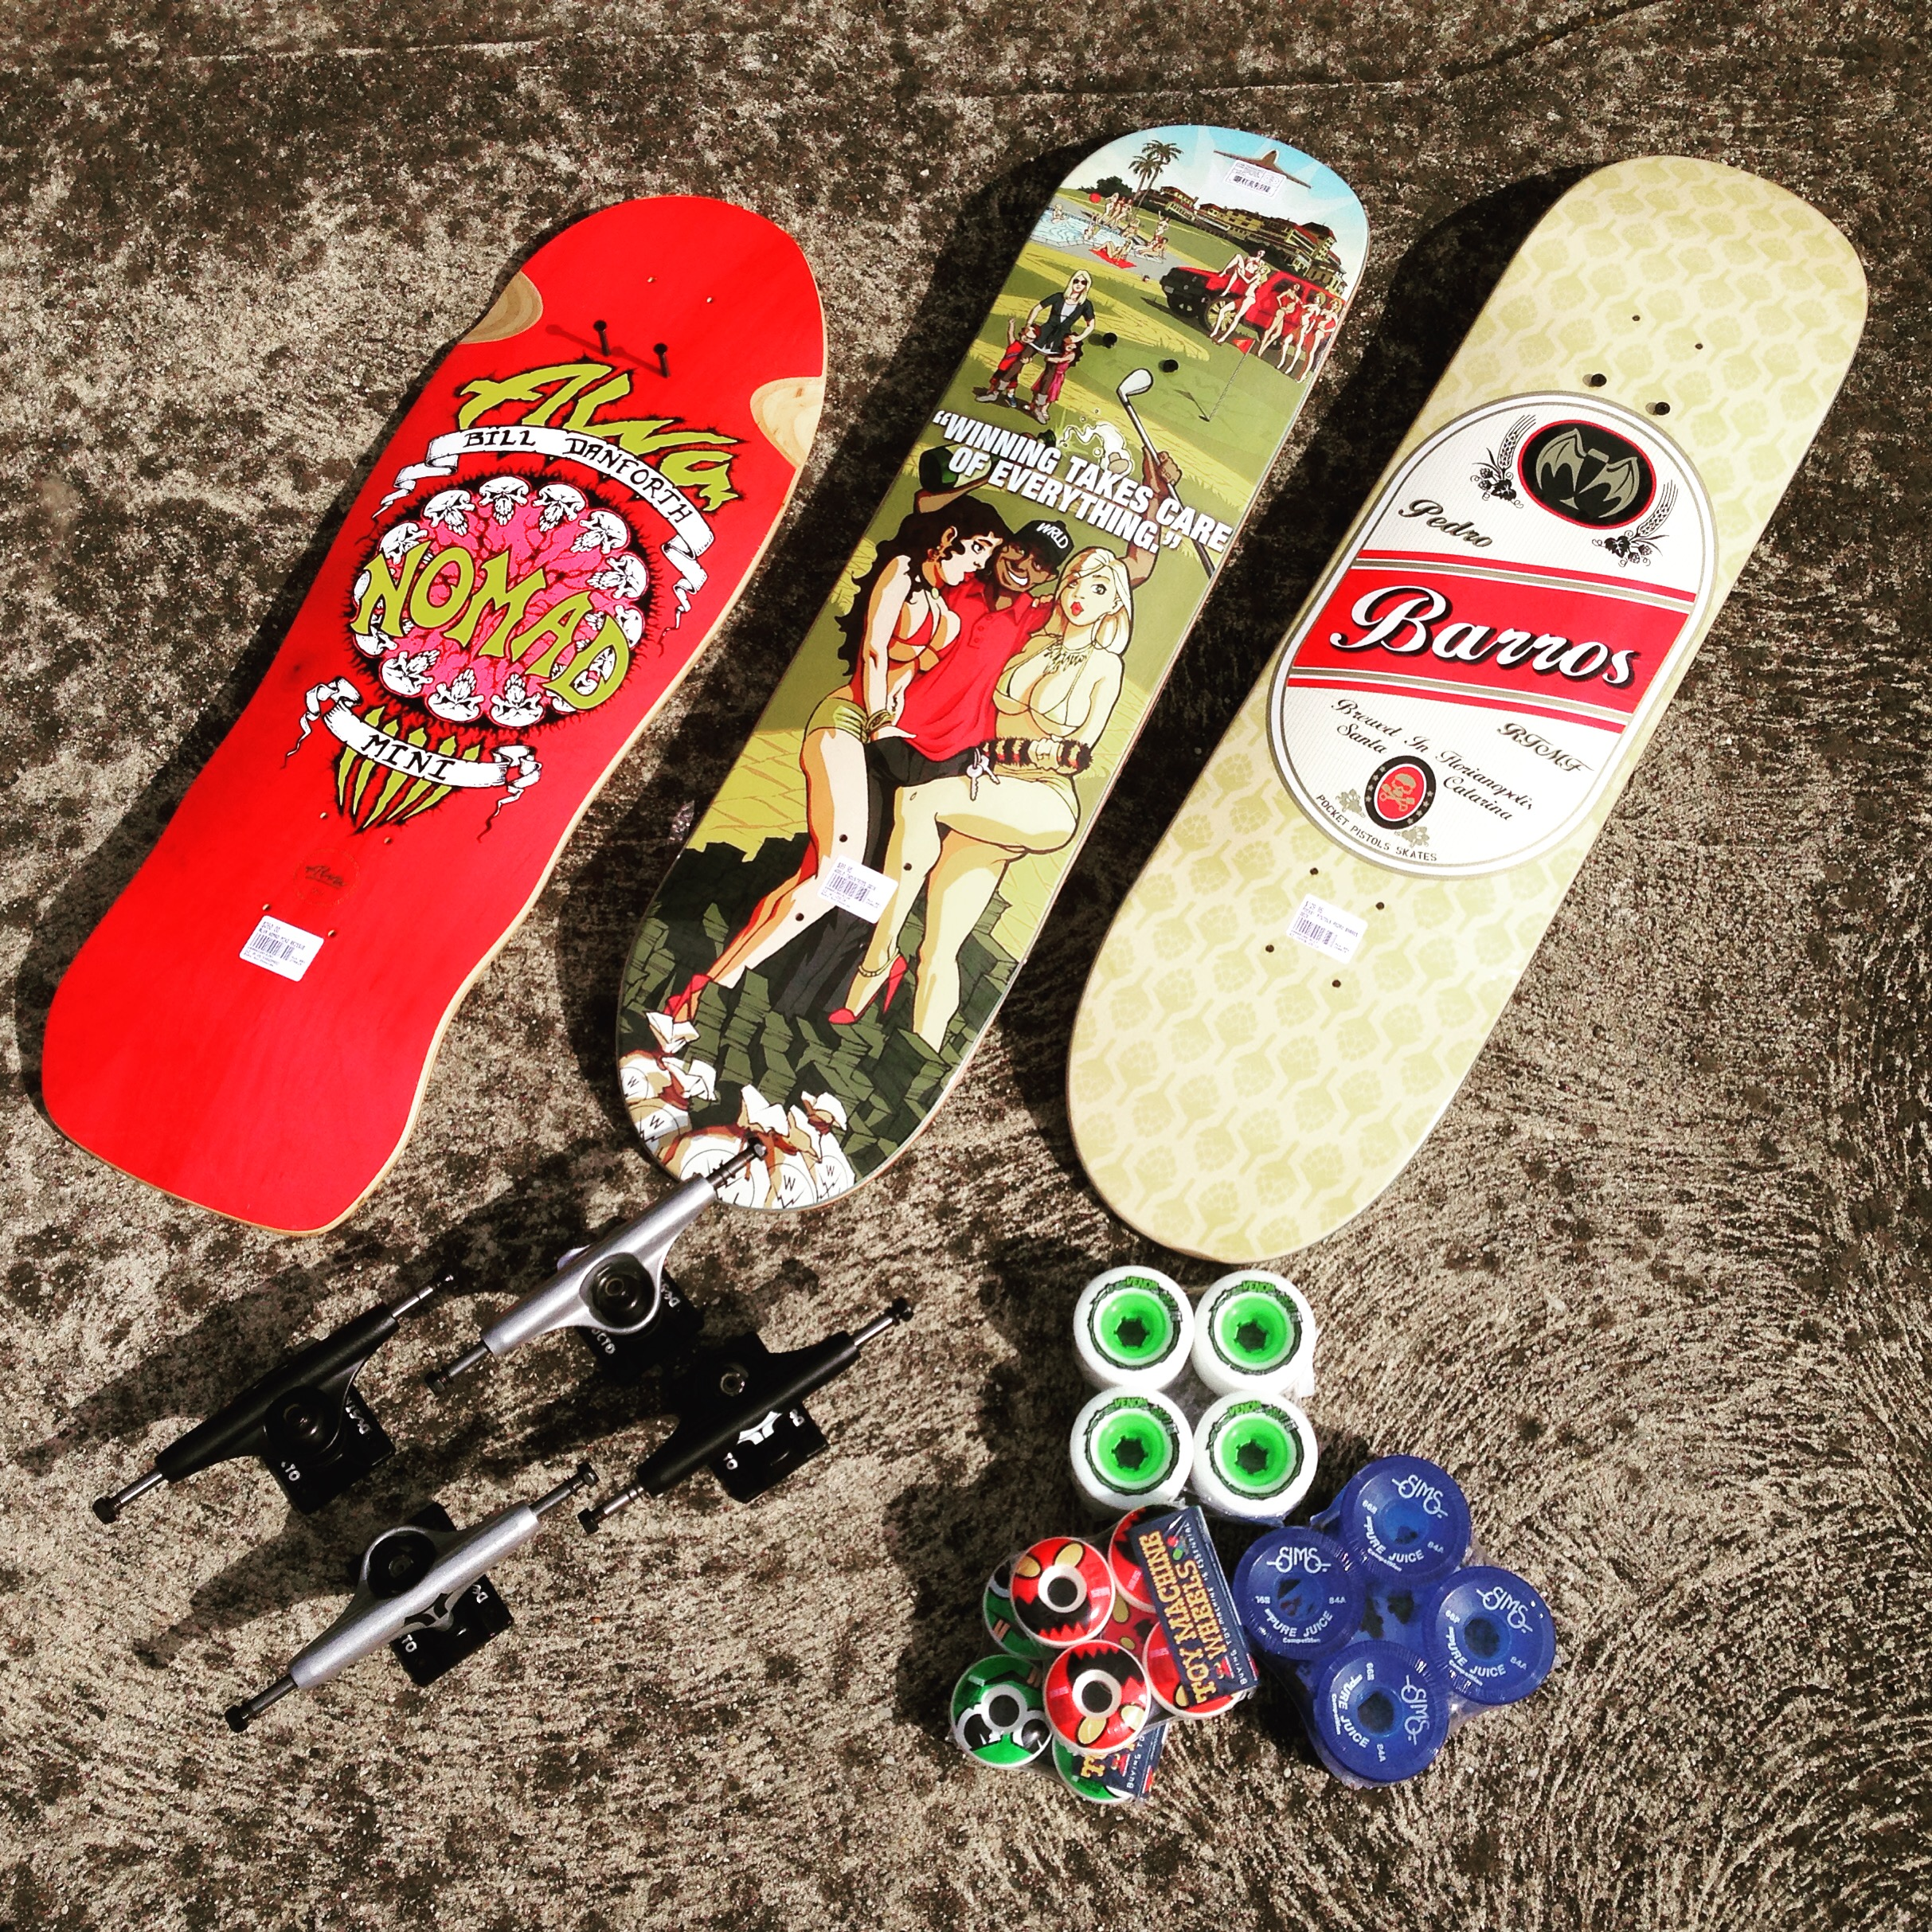 New Skate Gear now instore